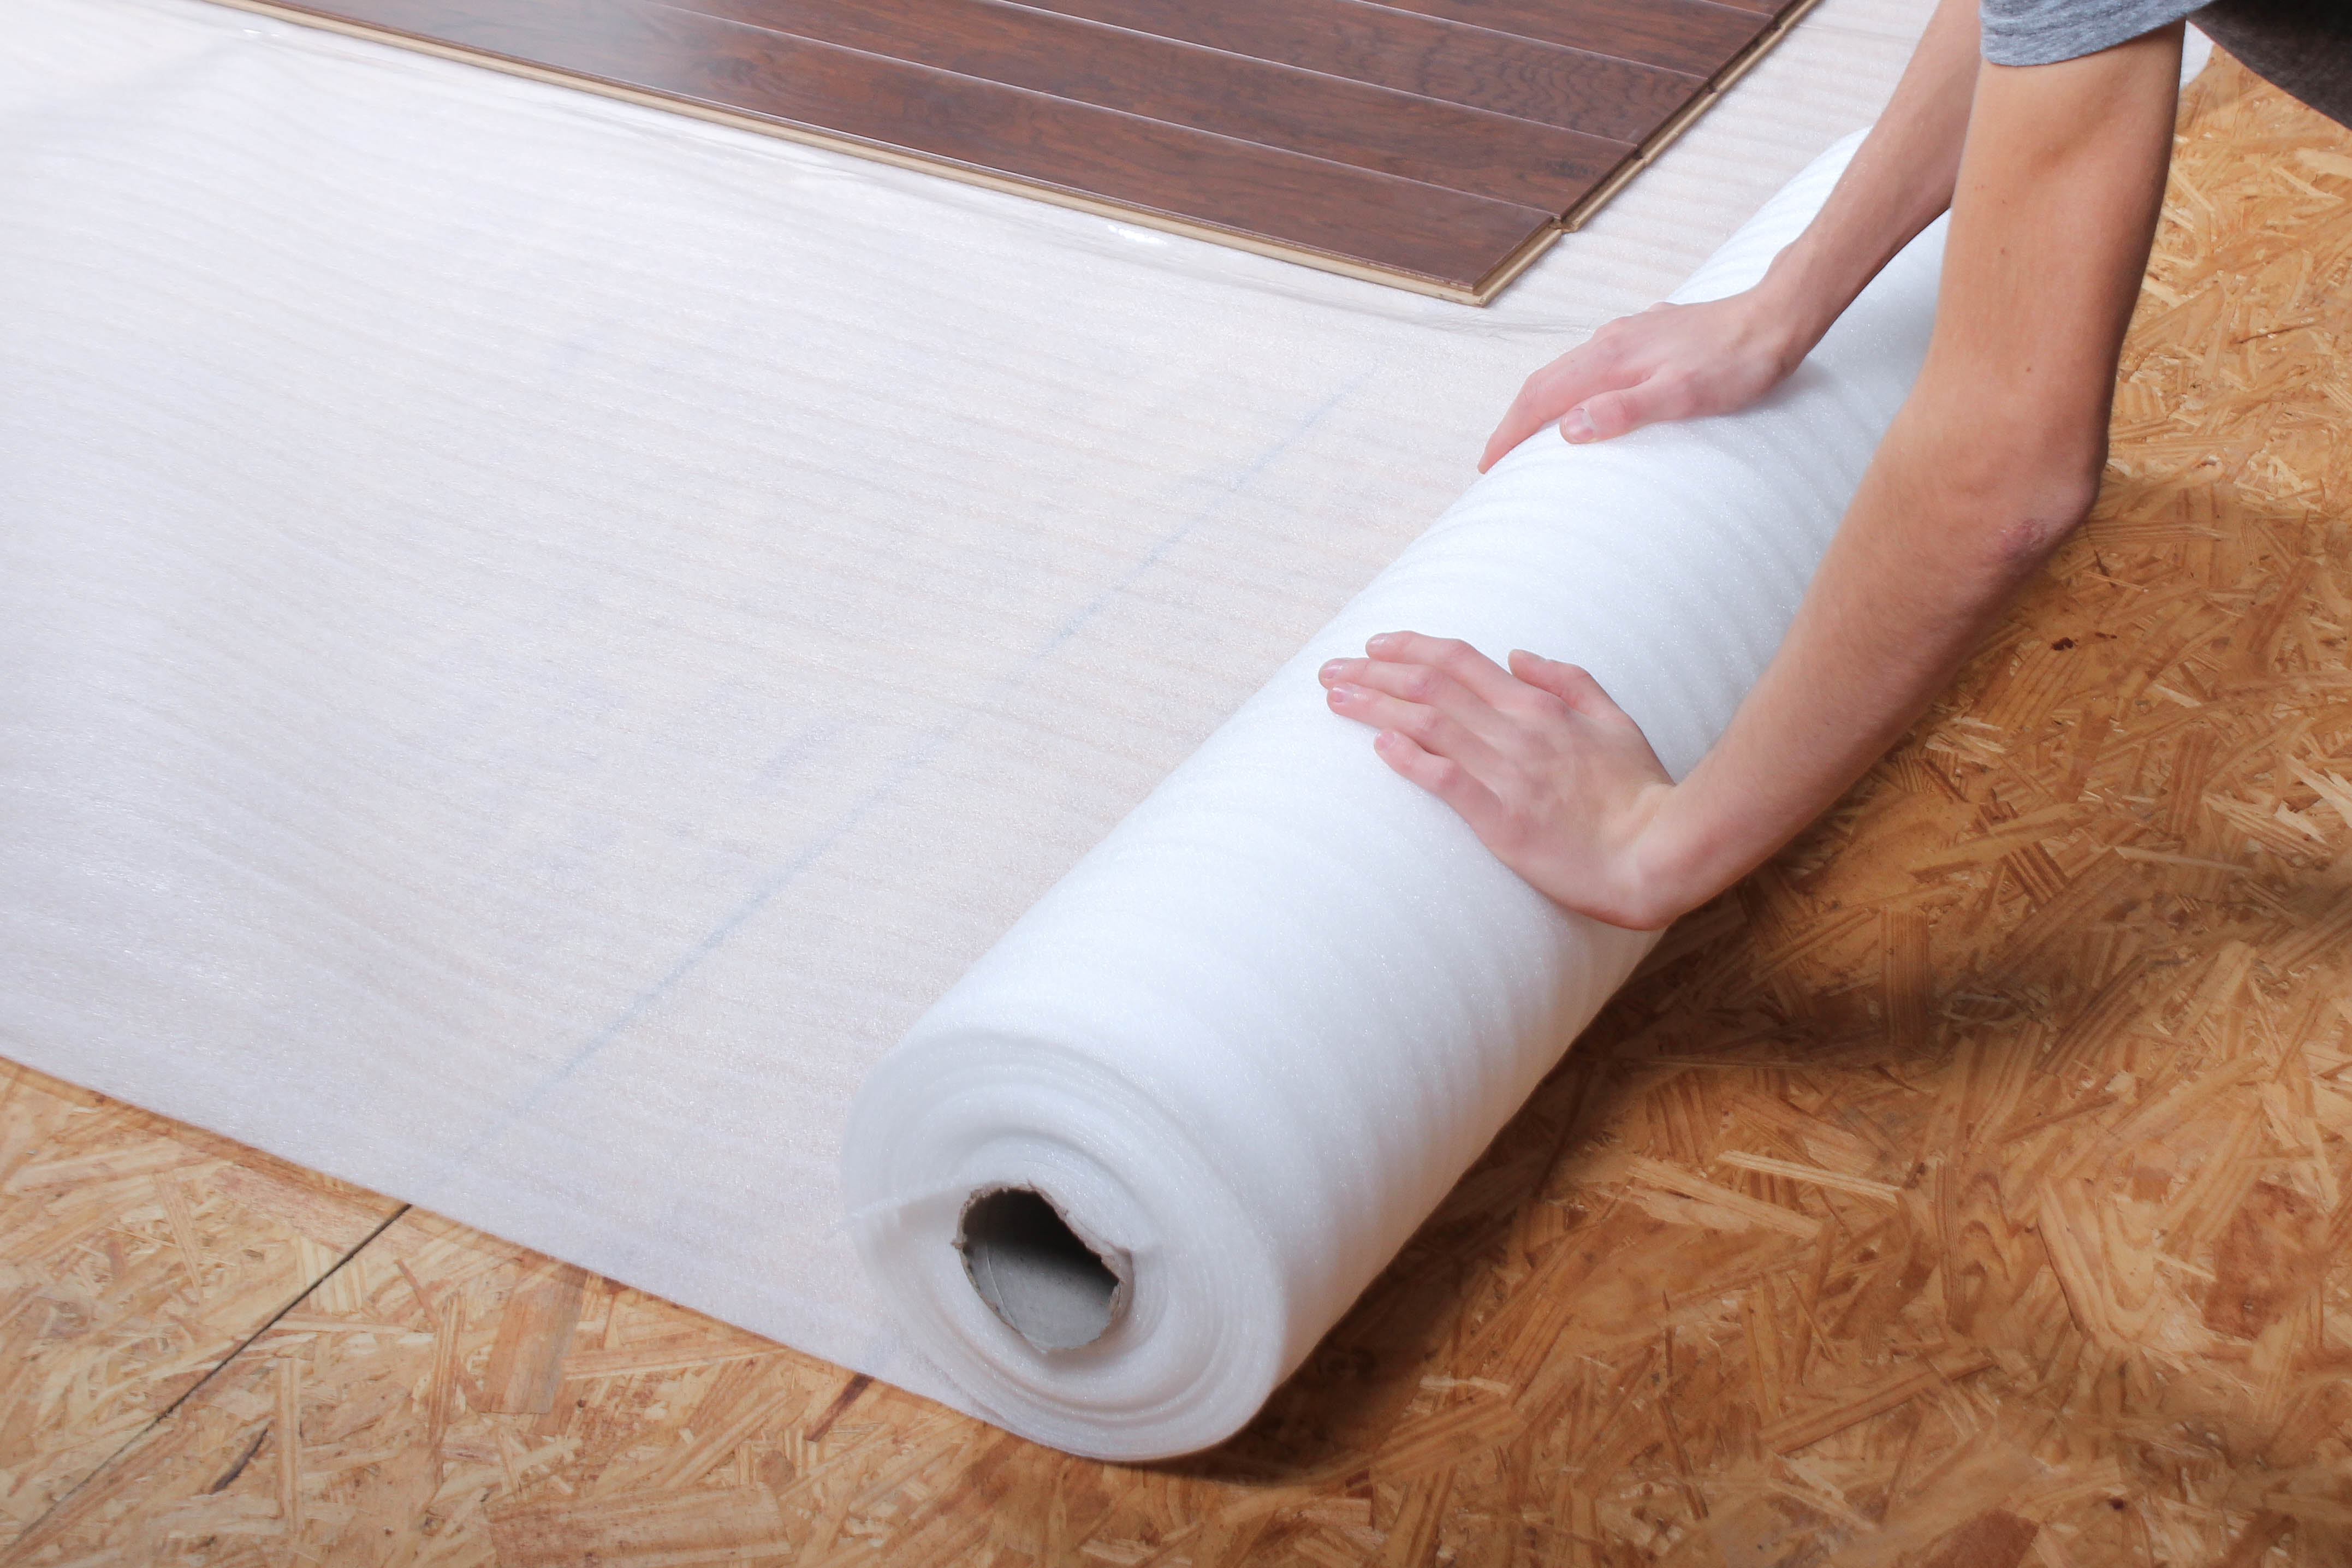 How To Install Standard Flooring Underlayment – An Illustrated Step-by-Step Guide